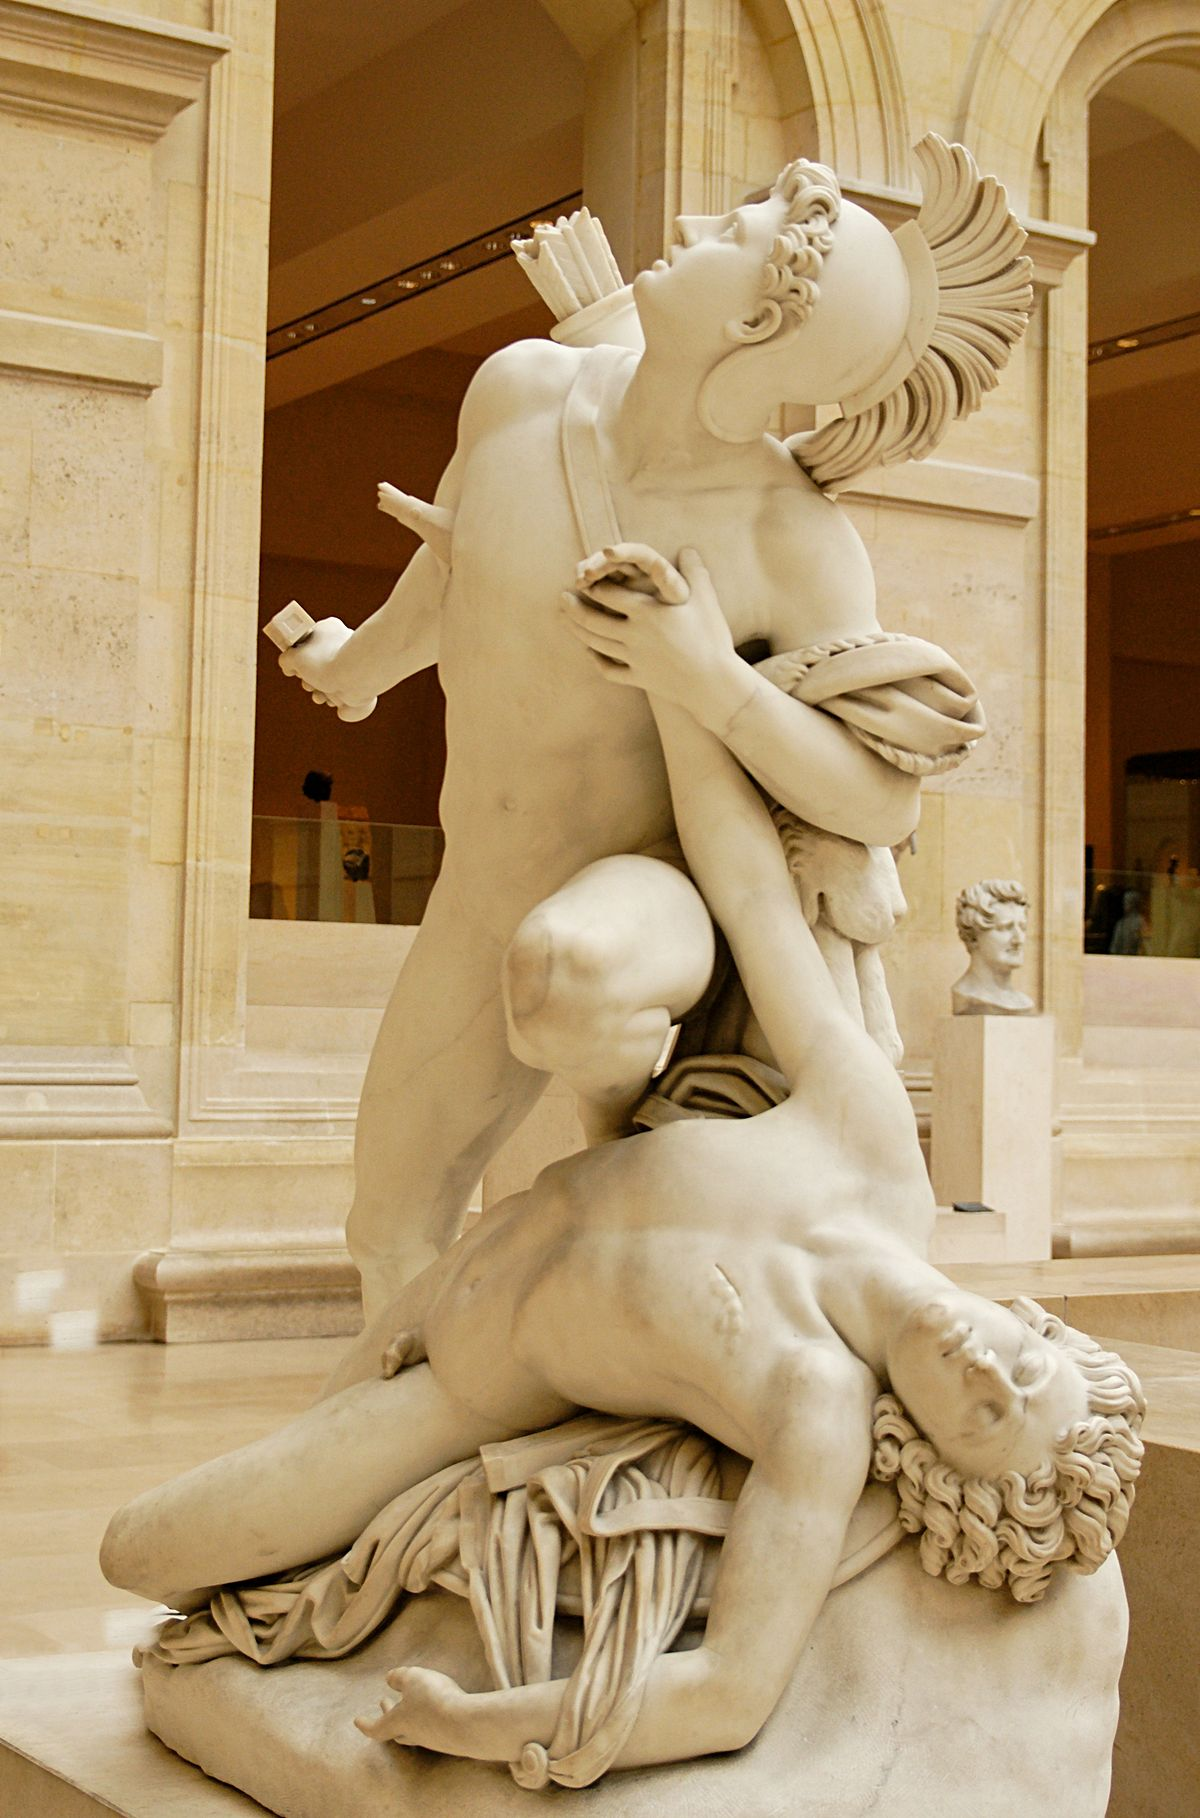 Sexuality in ancient Rome - Wikipedia